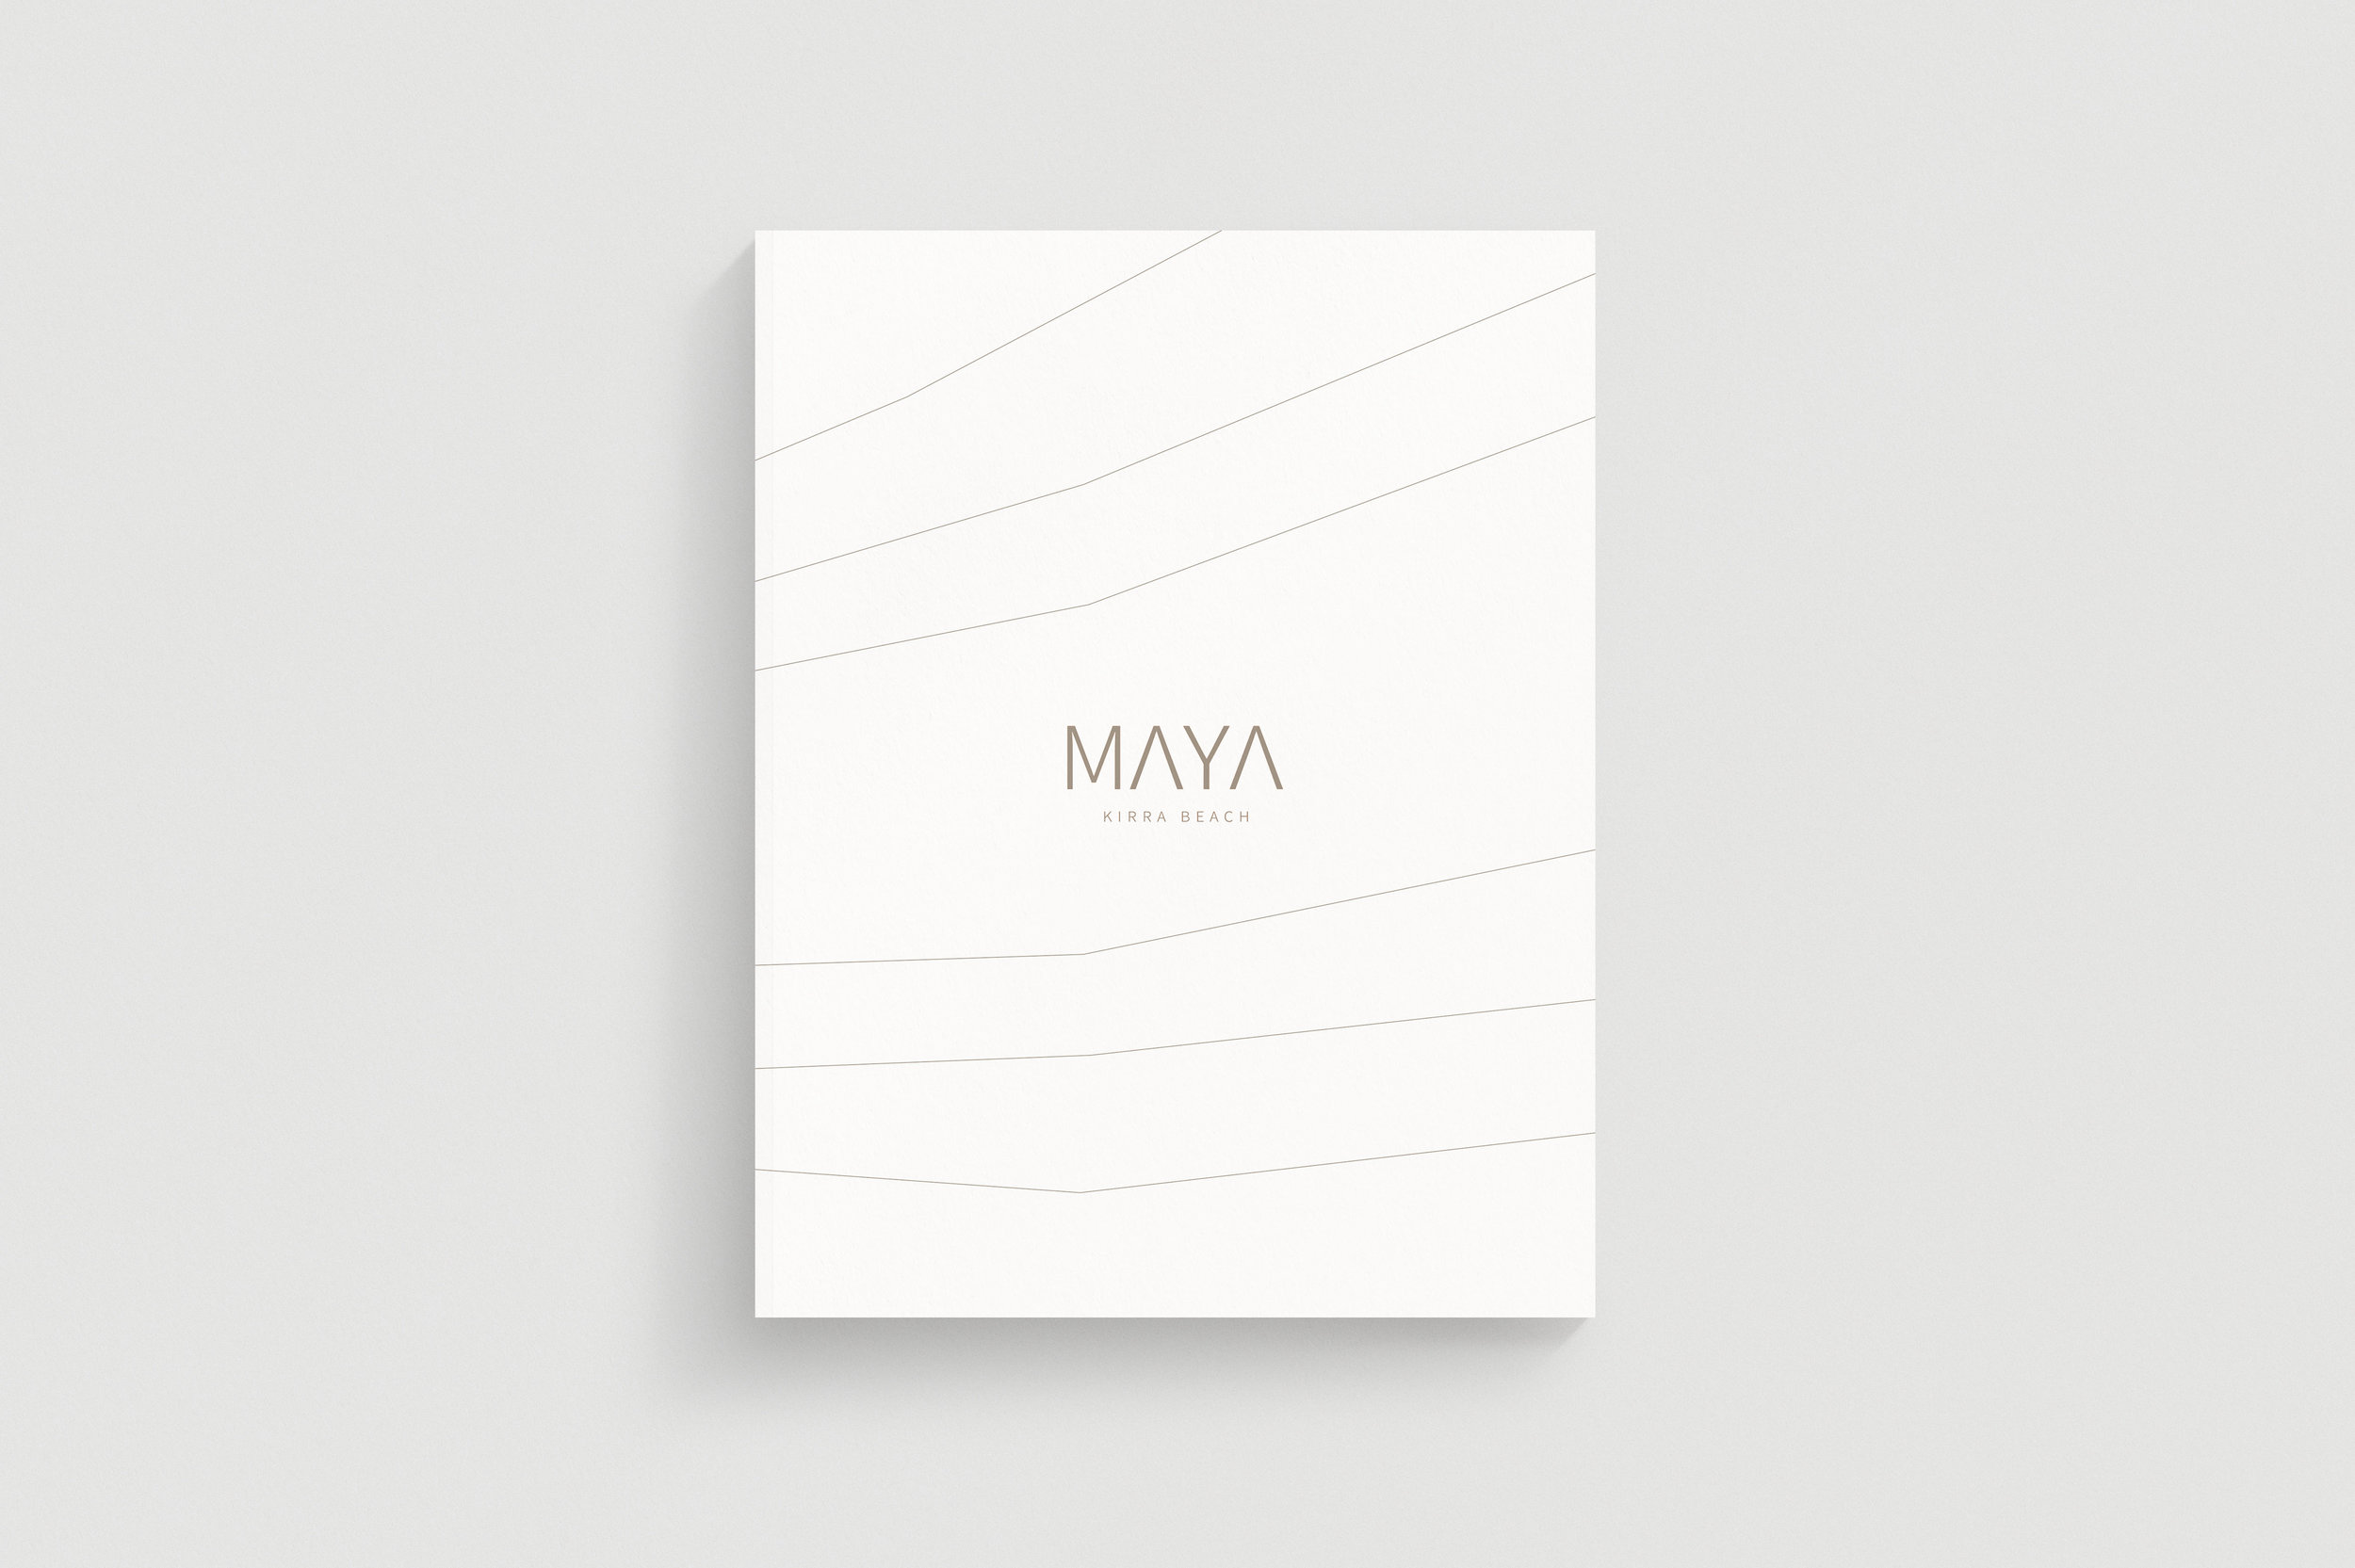 Maya-Brochure-Cover-Mockup-1-No-Shadow.jpg